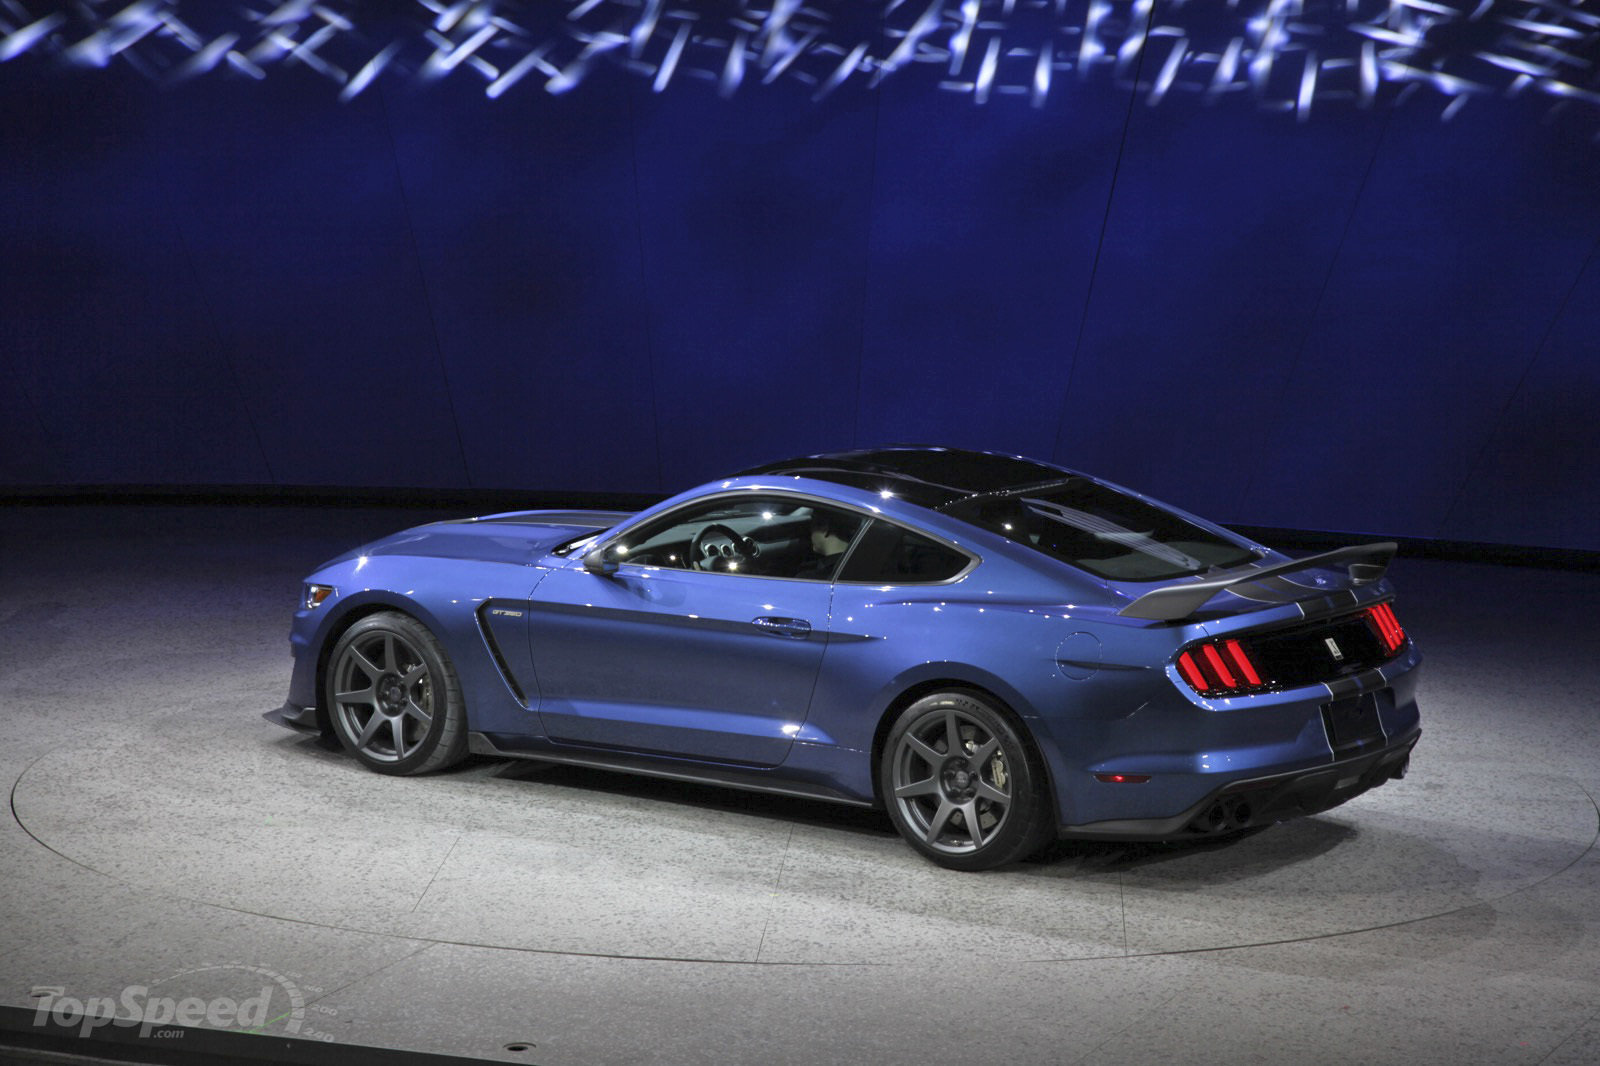 2016 Ford Mustang Shelby GT350R photo - 2